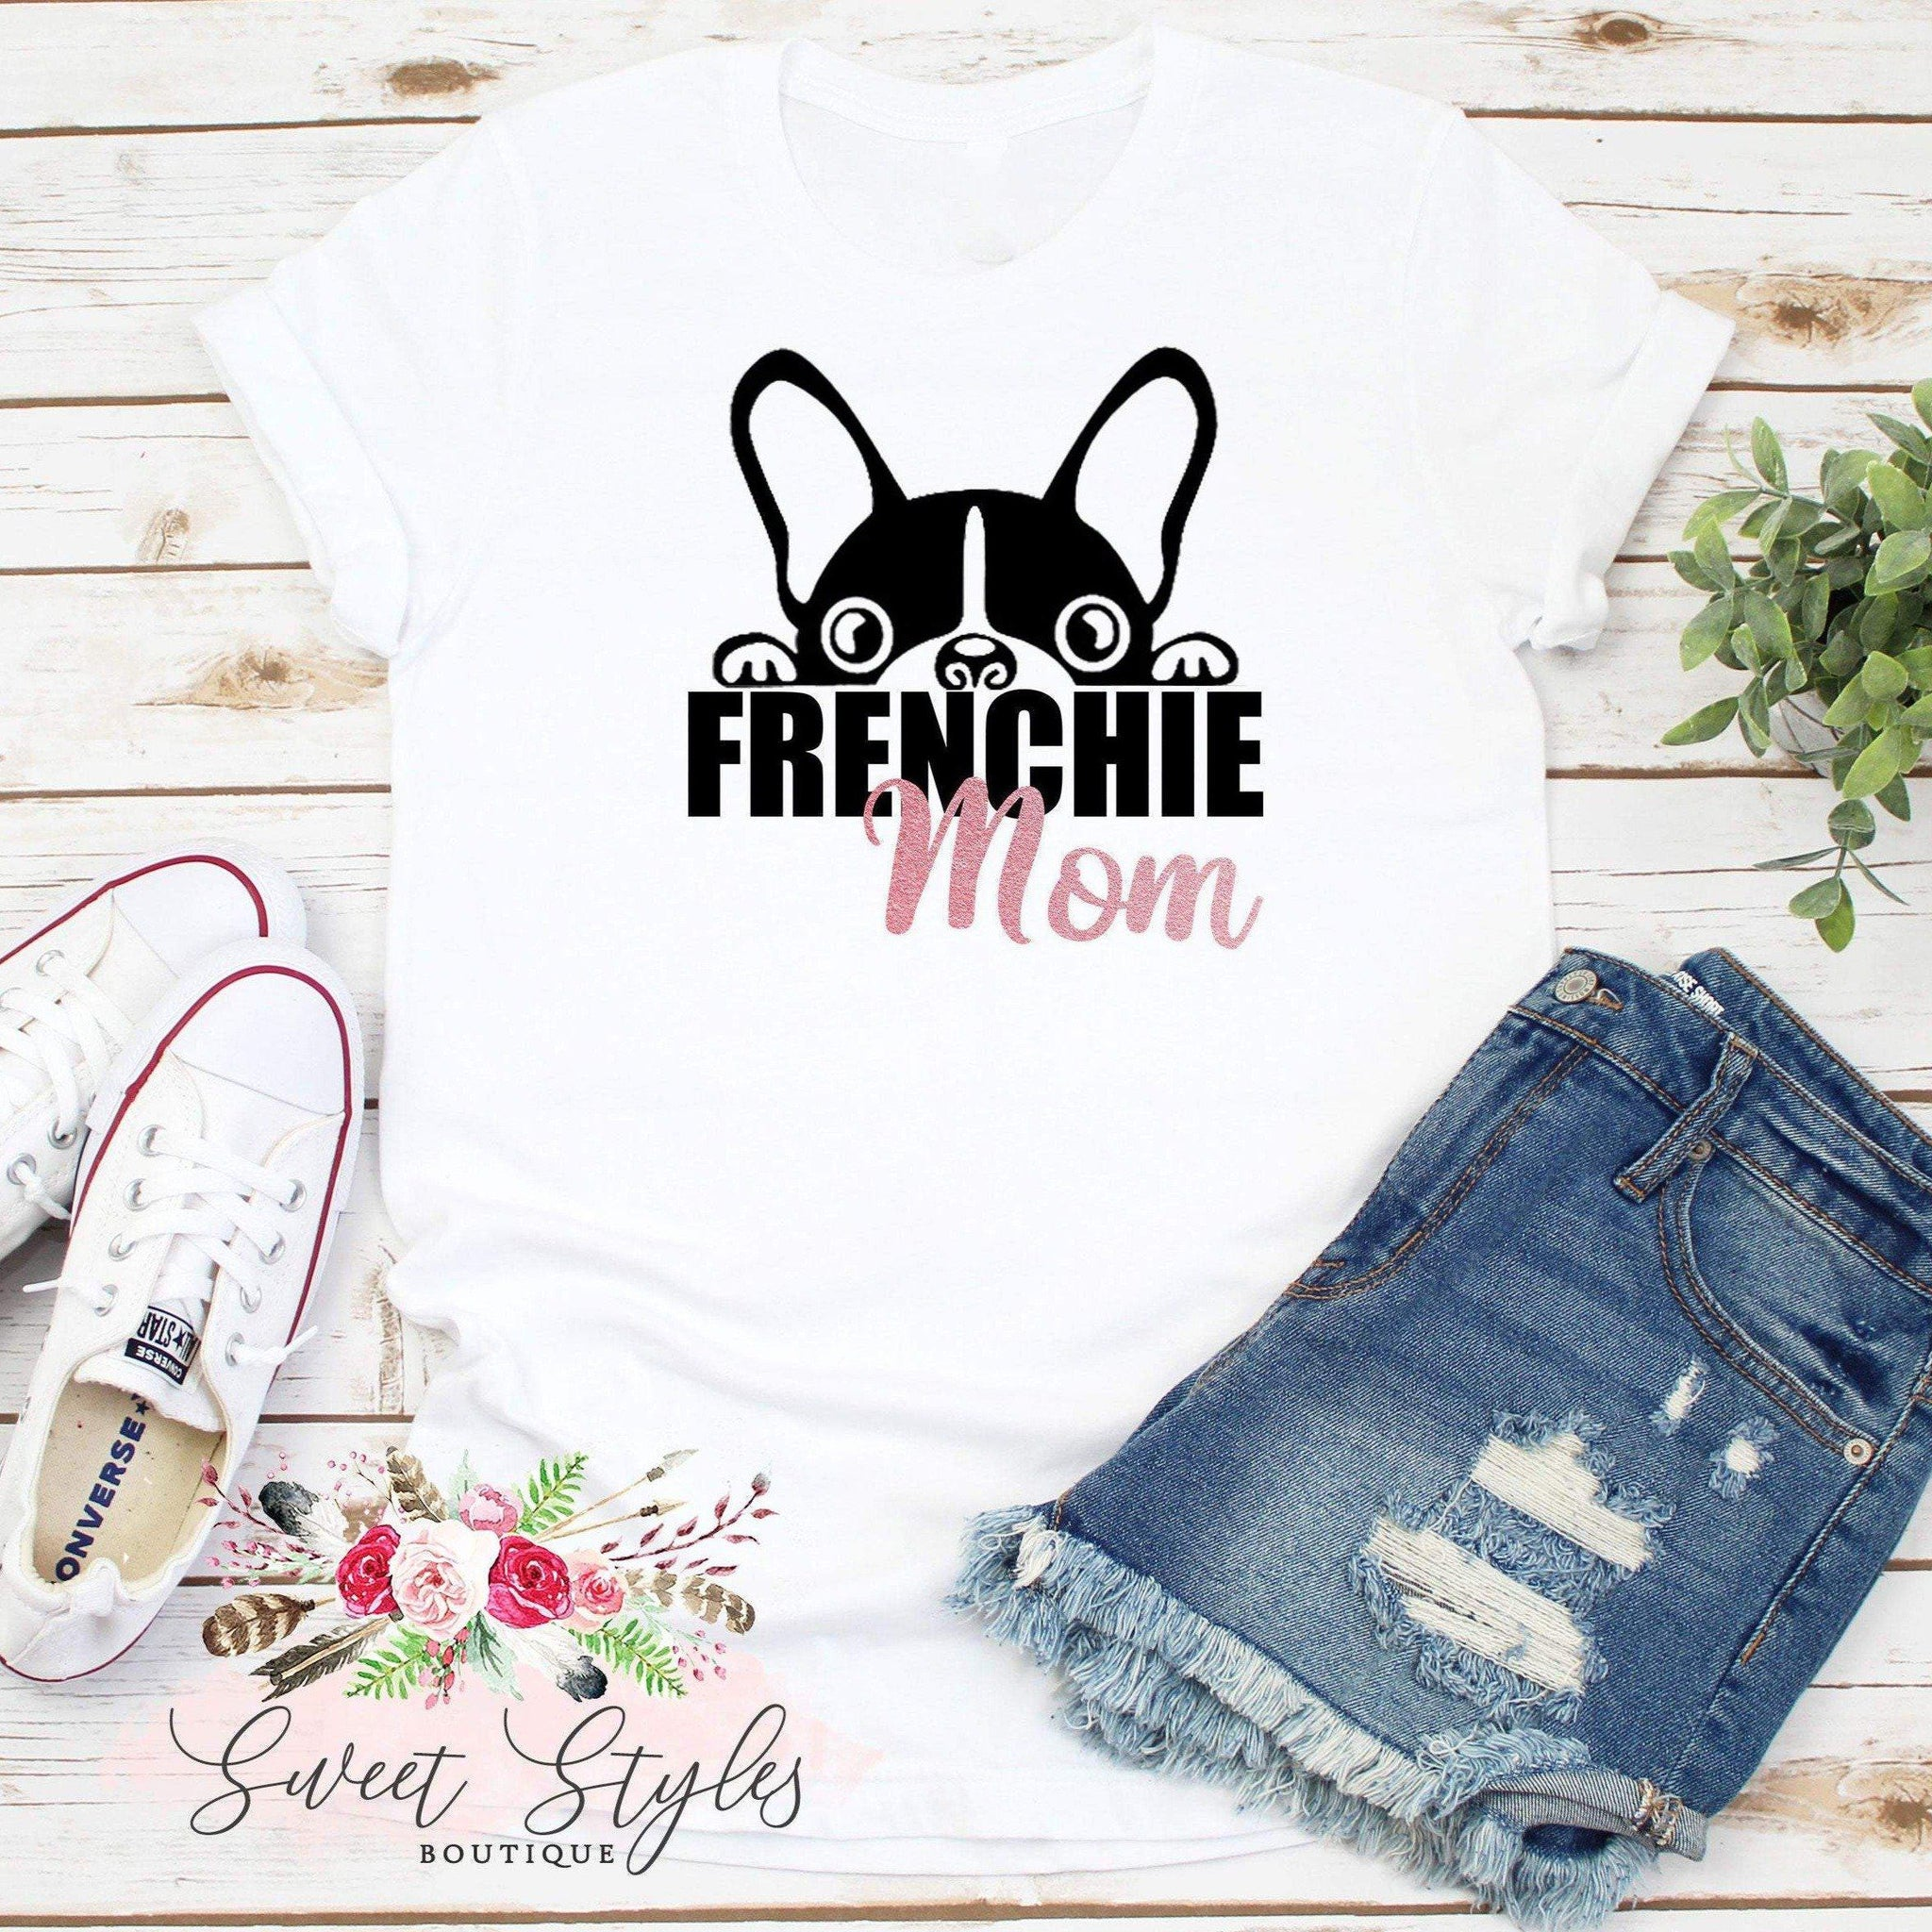 Dog lover Boston Frenchie Mom T-shirt-Sweet Styles boutique